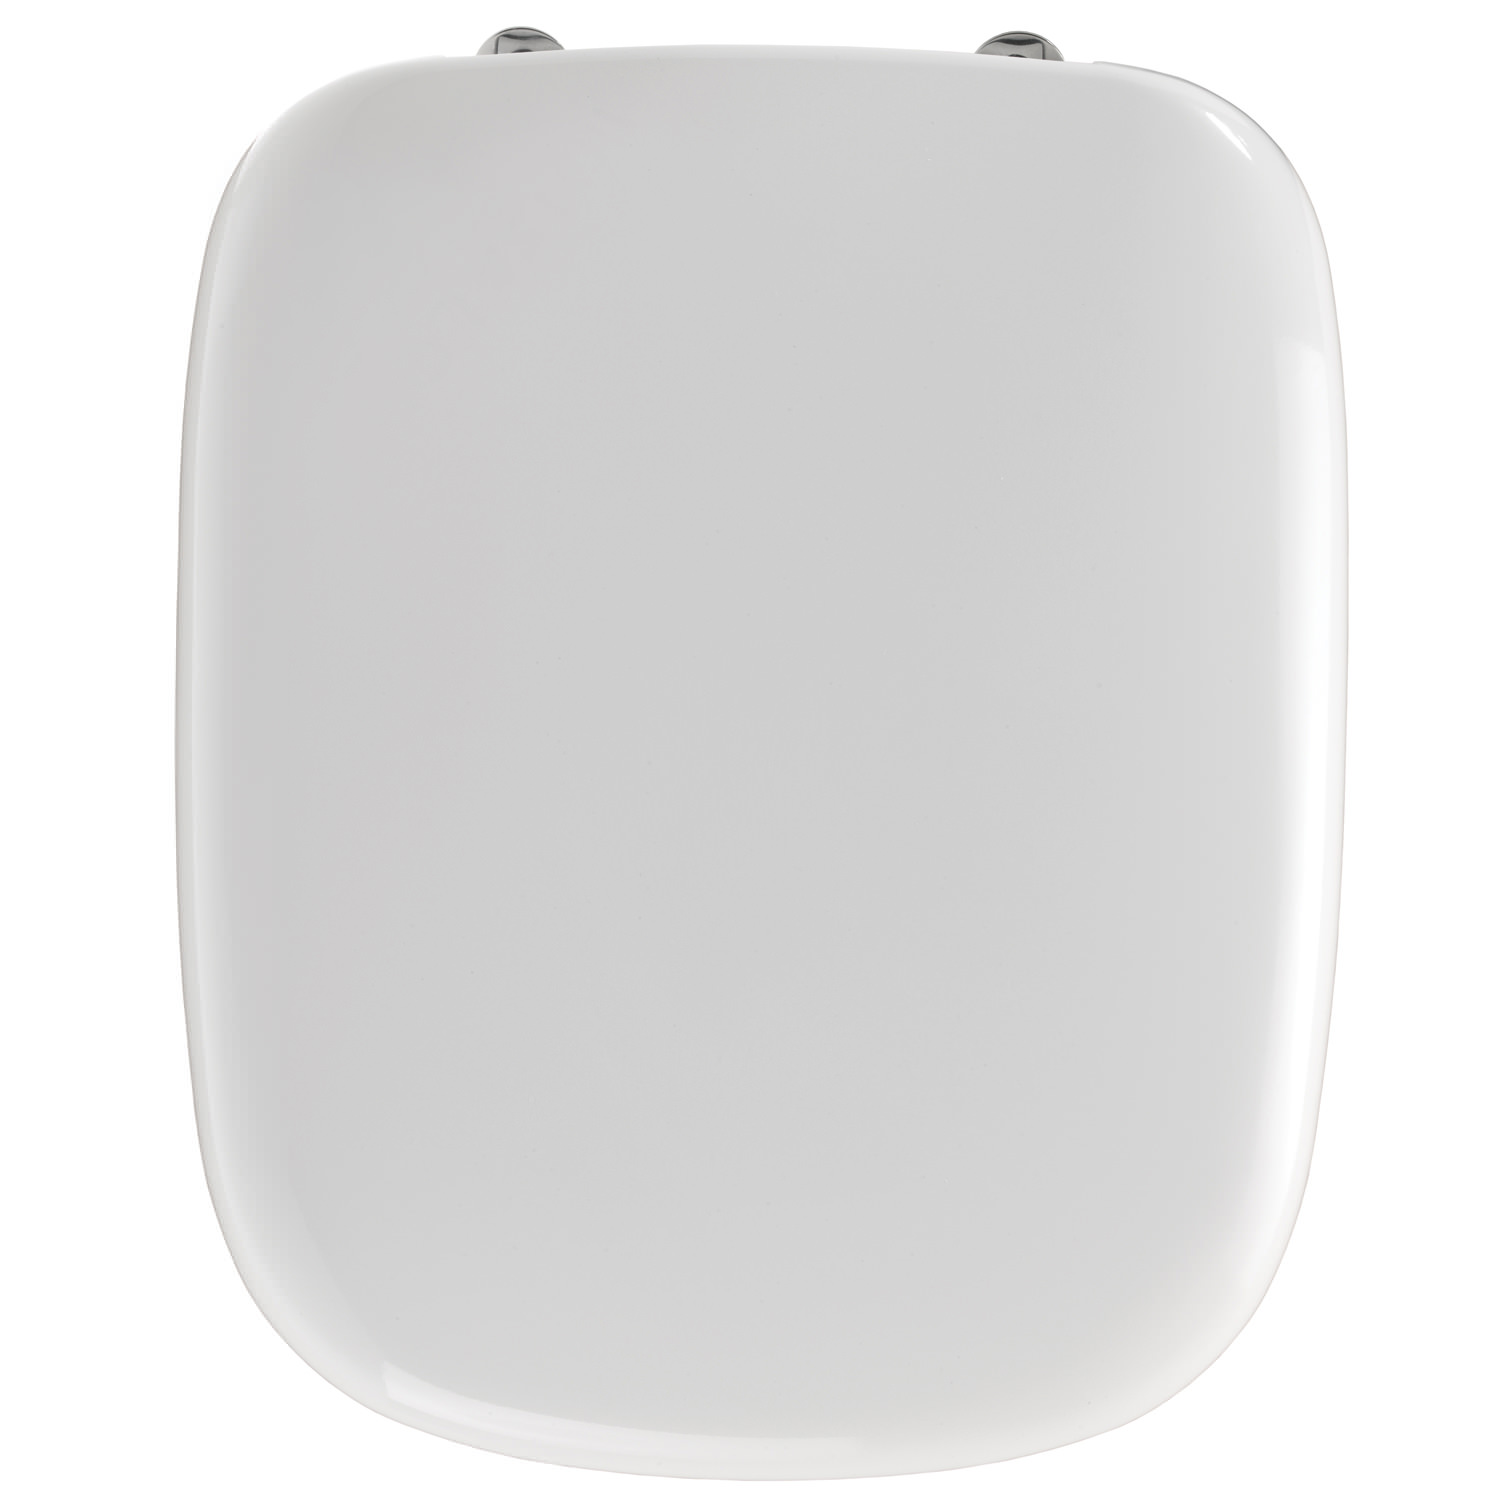 Twyford Moda Toilet Seat And Cover With Soft Closing